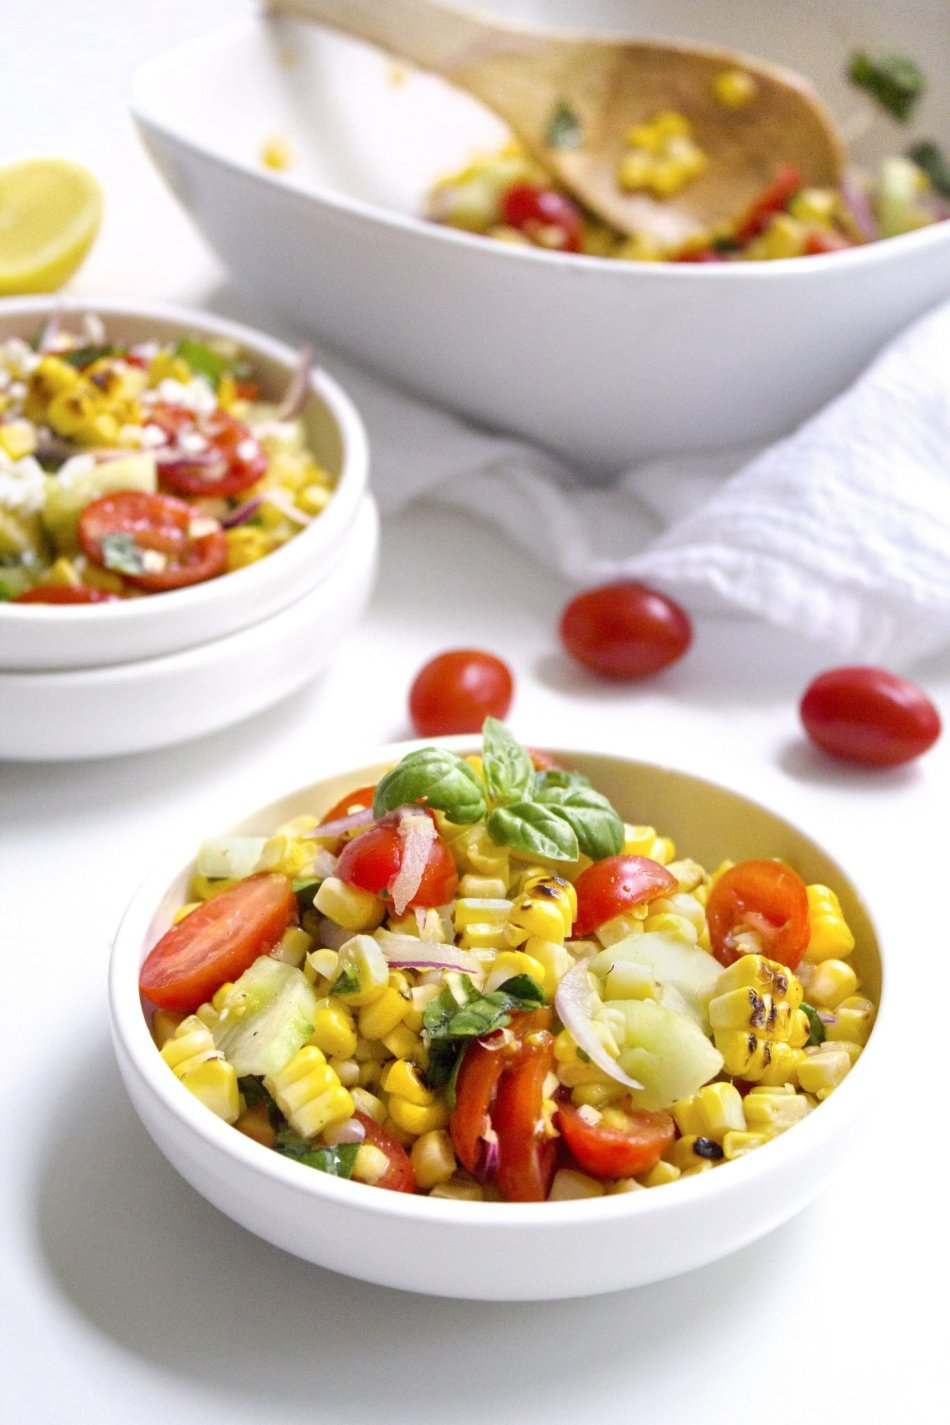 Grilled Corn Salad | Quick, easy, and delicious corn salad full of fresh summer veggies!